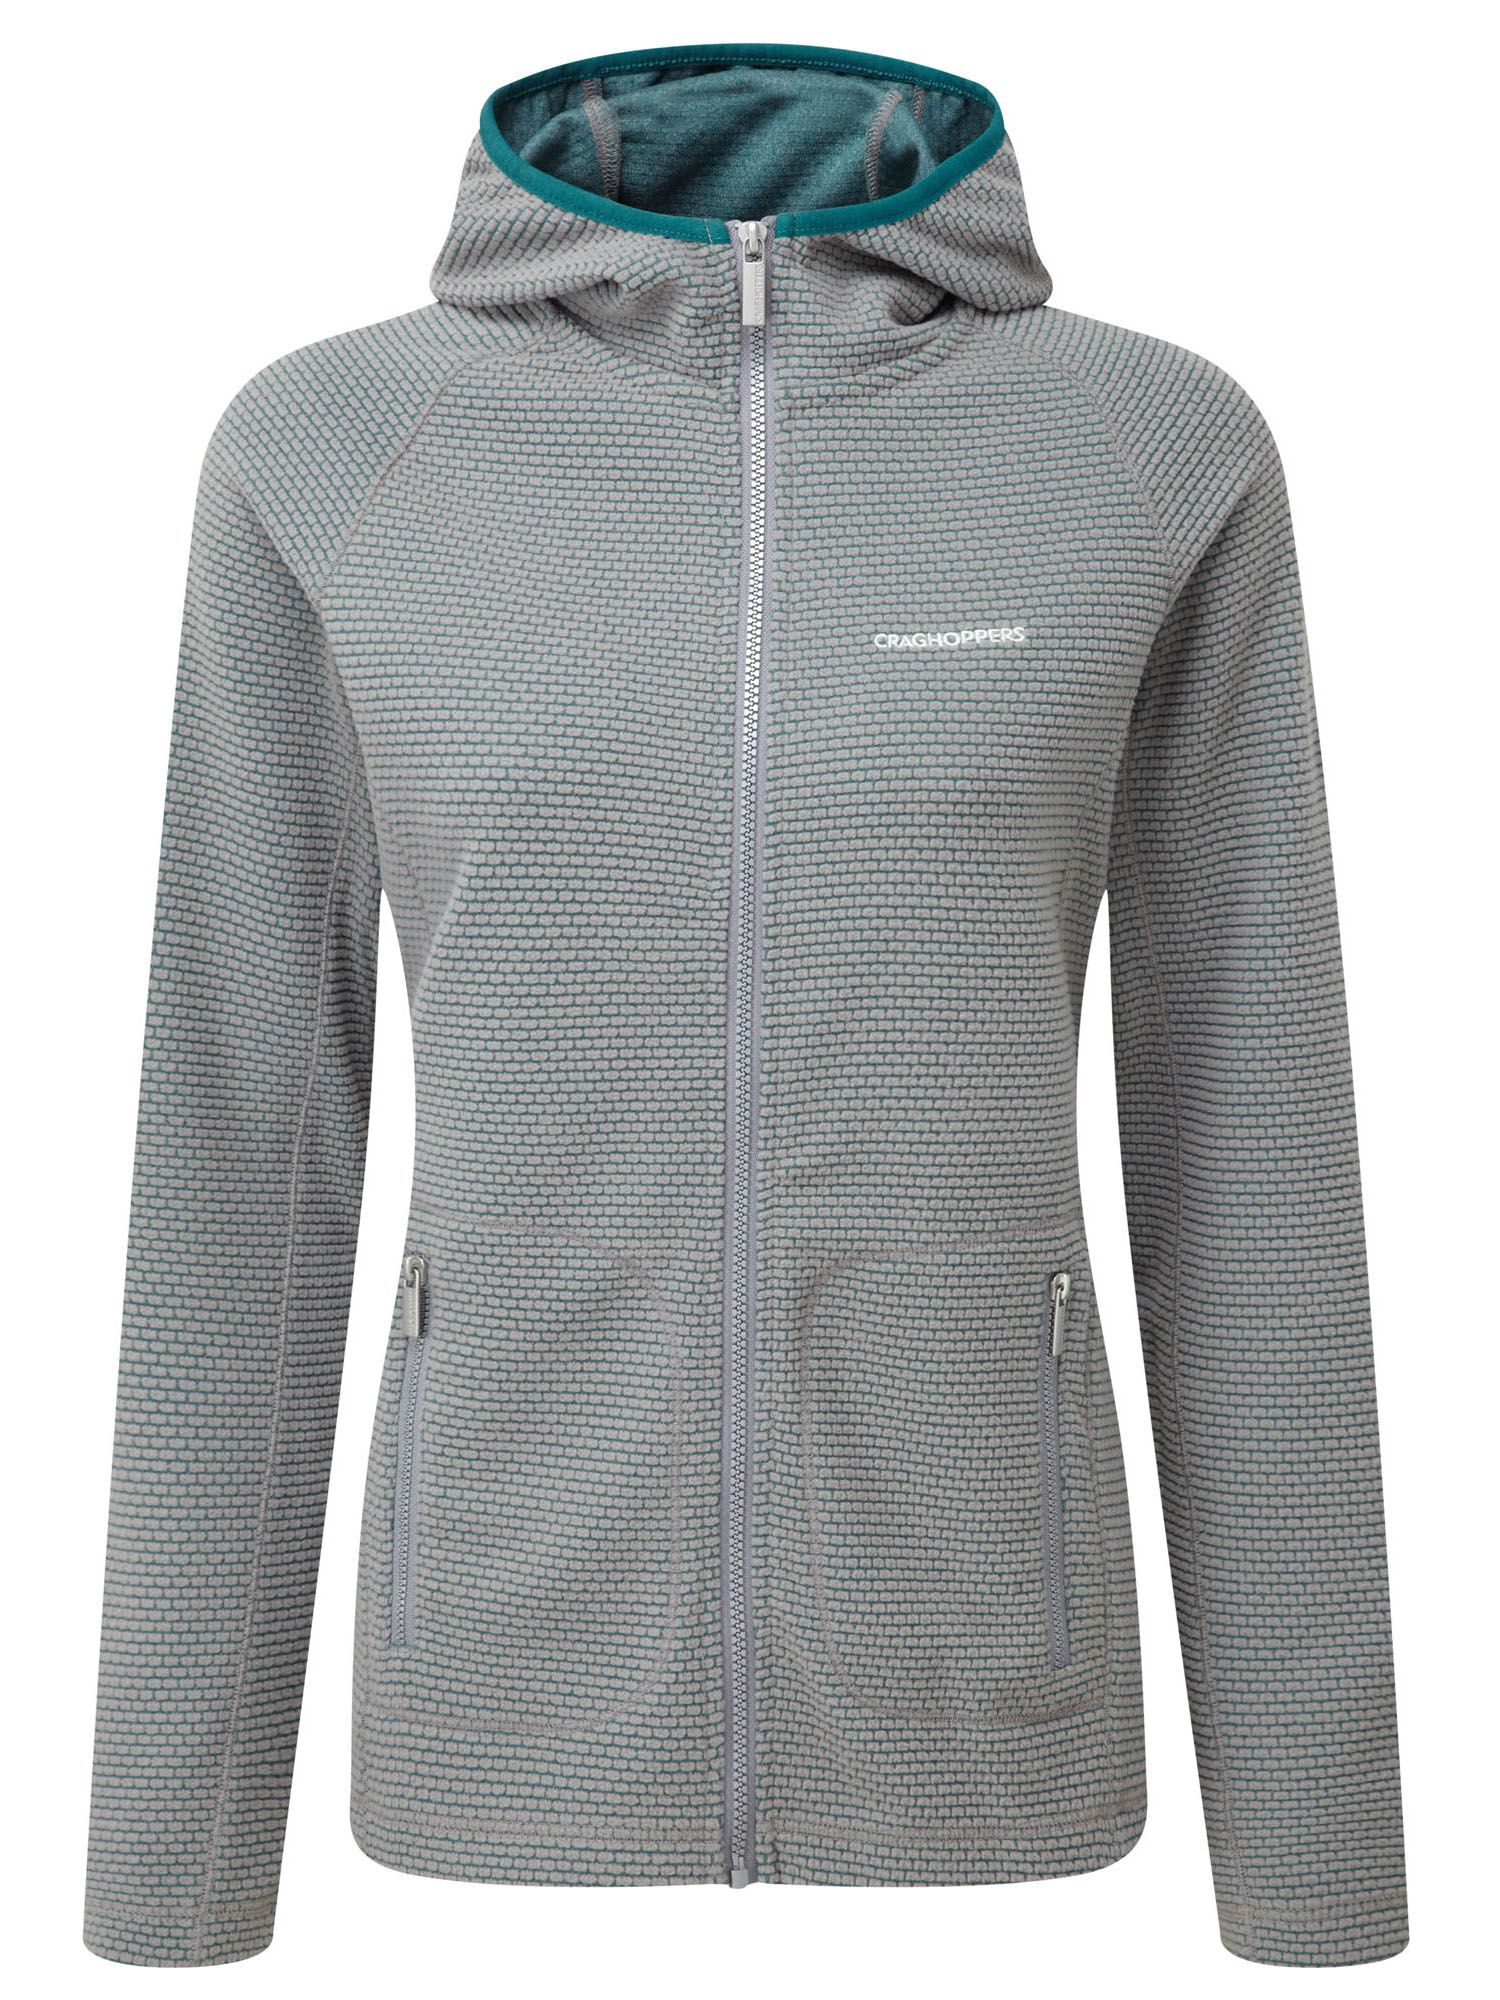 Craghoppers Hazelton Hooded Fleece Jacket, Grey